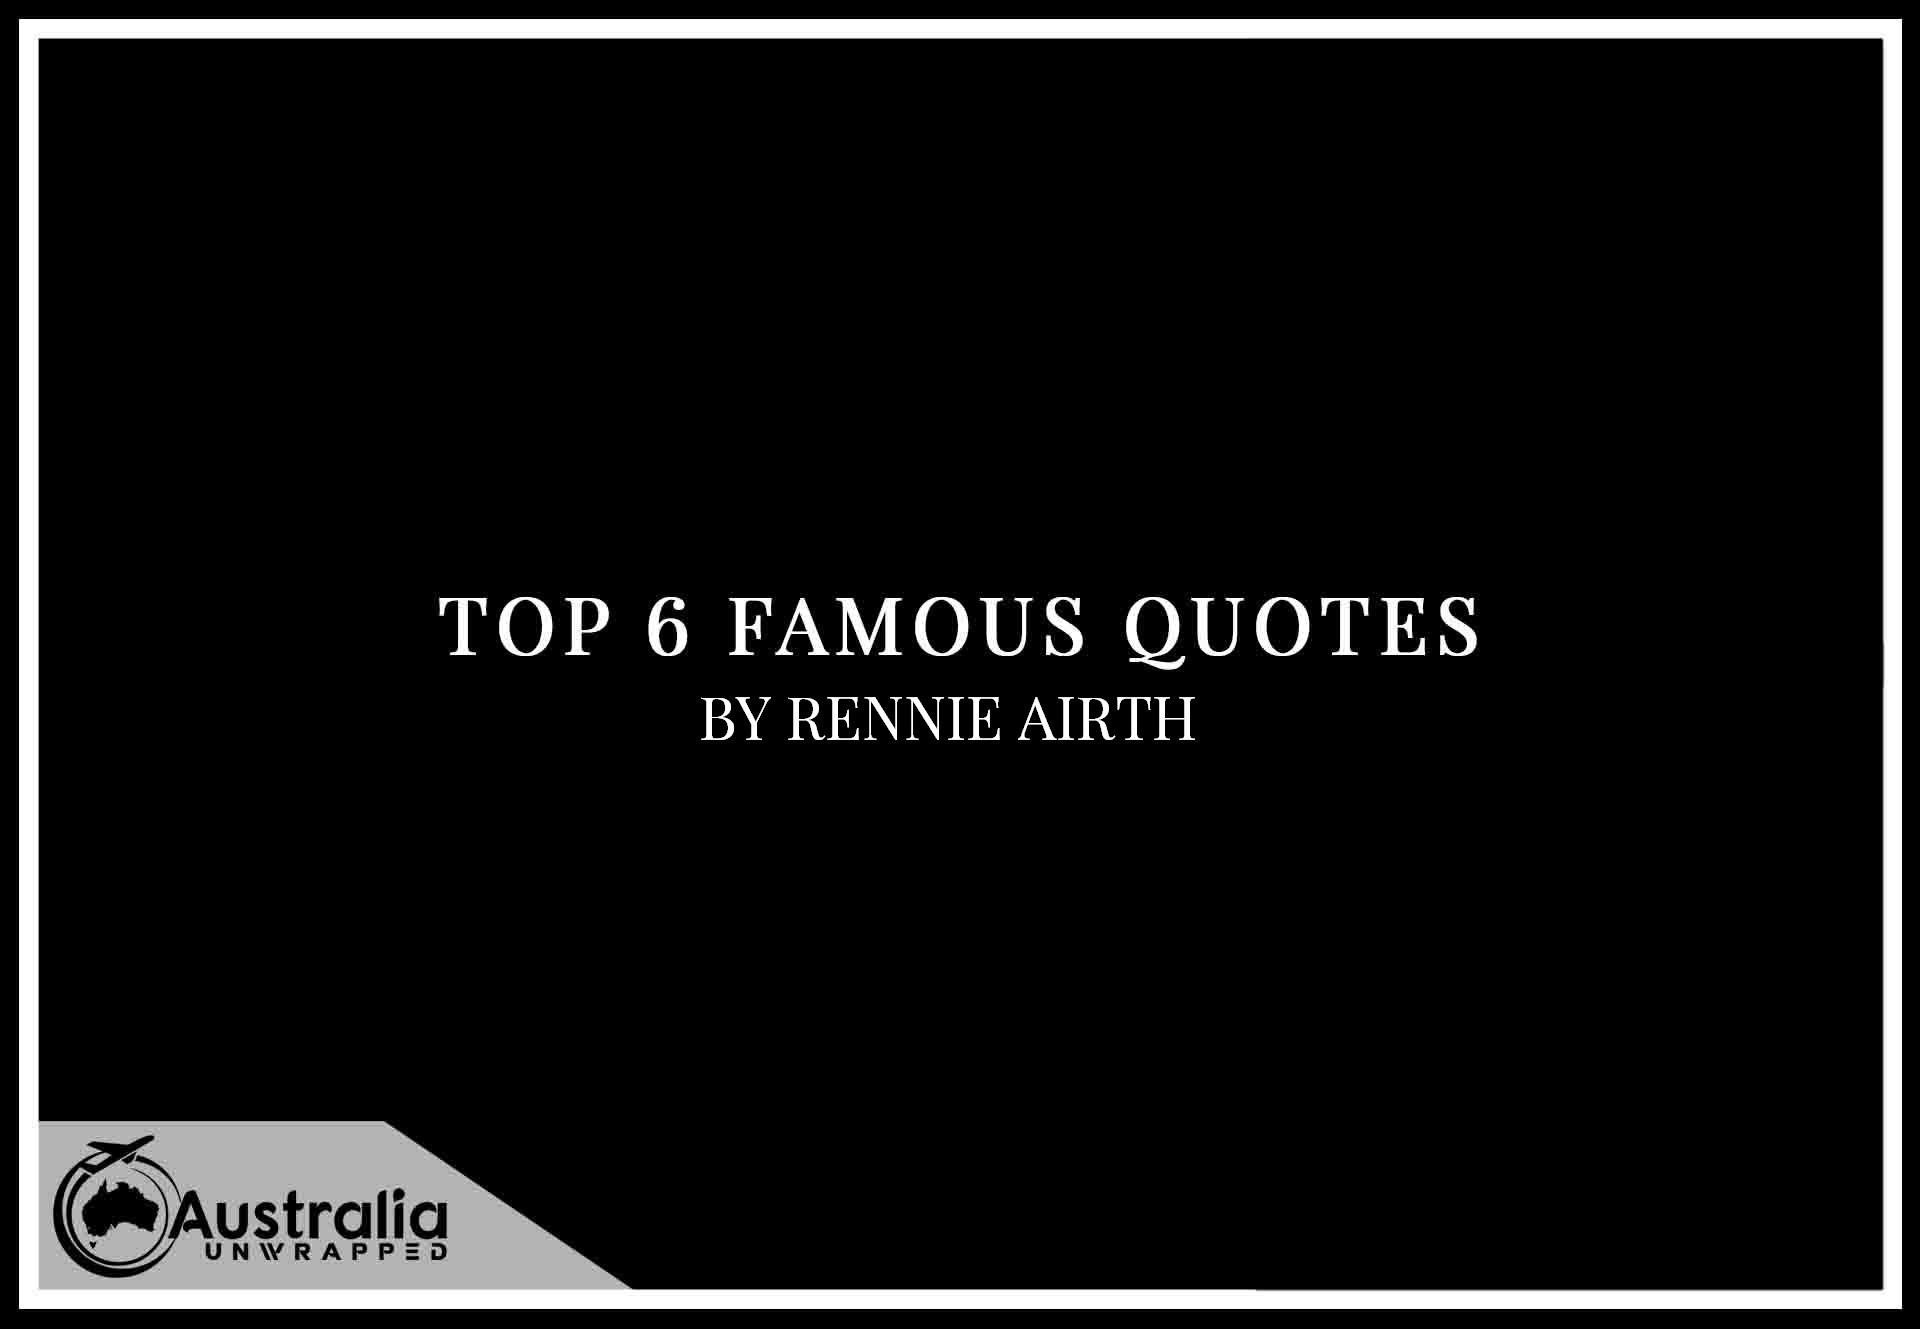 Rennie Airth's Top 6 Popular and Famous Quotes